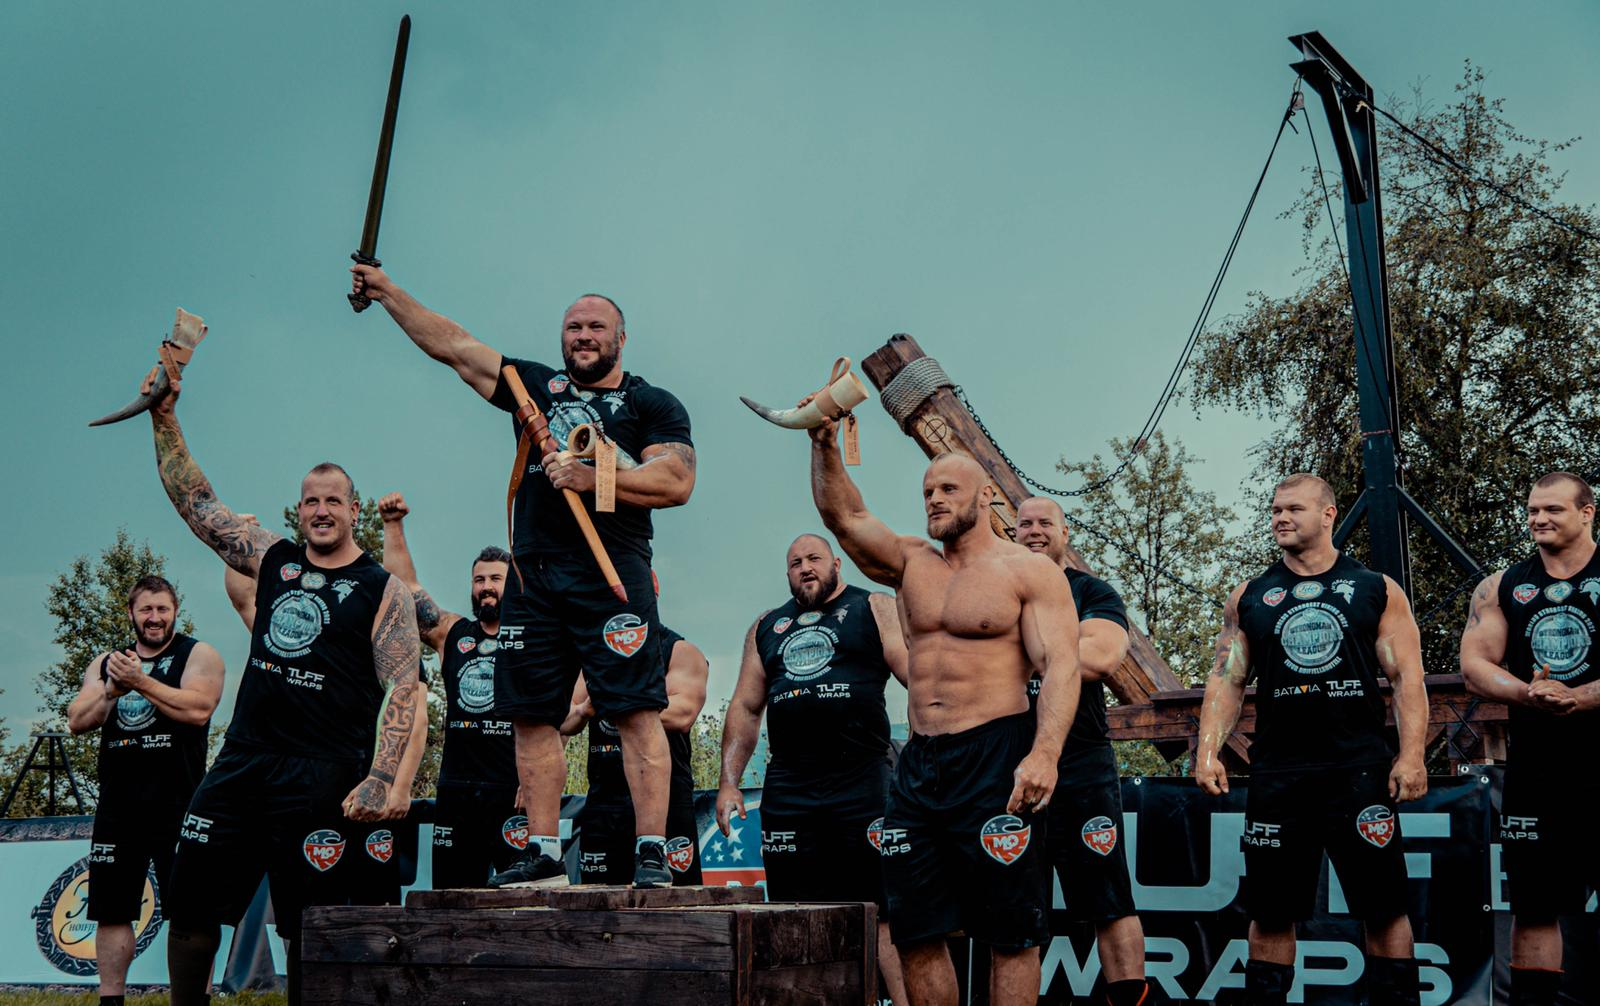 Dainis Zageris will be sporting the crown of MLO SCL World's Strongest Viking 2021